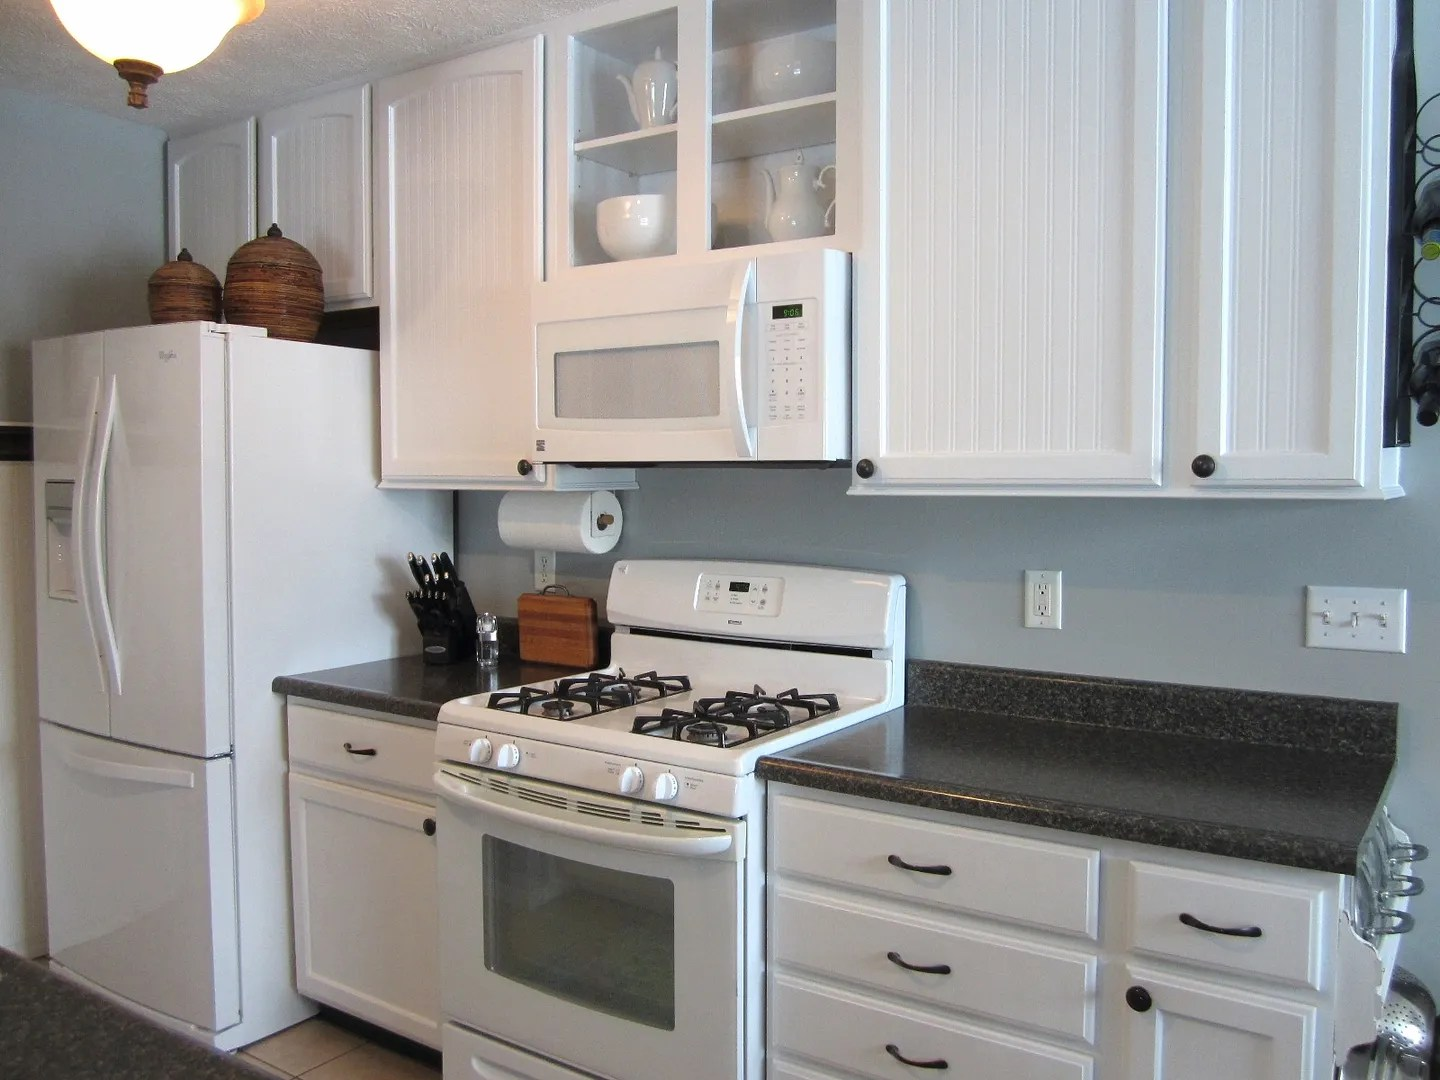 Cabinet Paint That Matches White Kitchen Appliances Home Staging In Bloomington Illinois